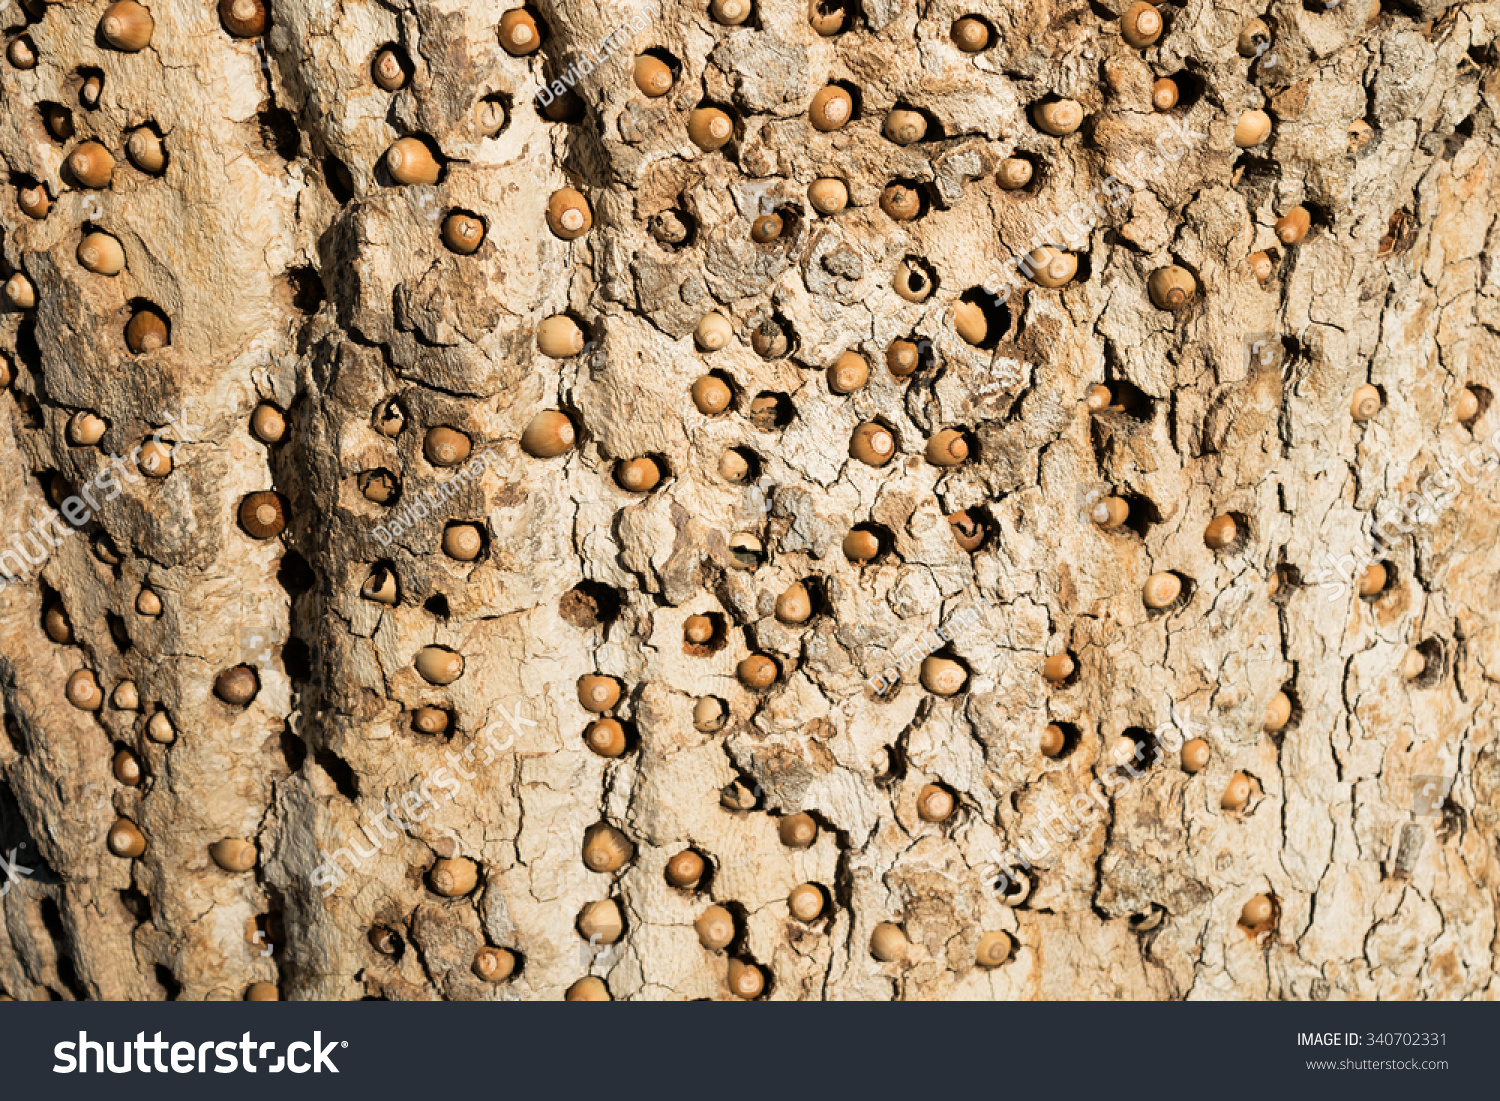 The Acorn Woodpecker (Melanerpes formicivorus) makes holes in tree bark to store acorns, leaving a distinctive pattern (texture), in the hills of Monterey, California.